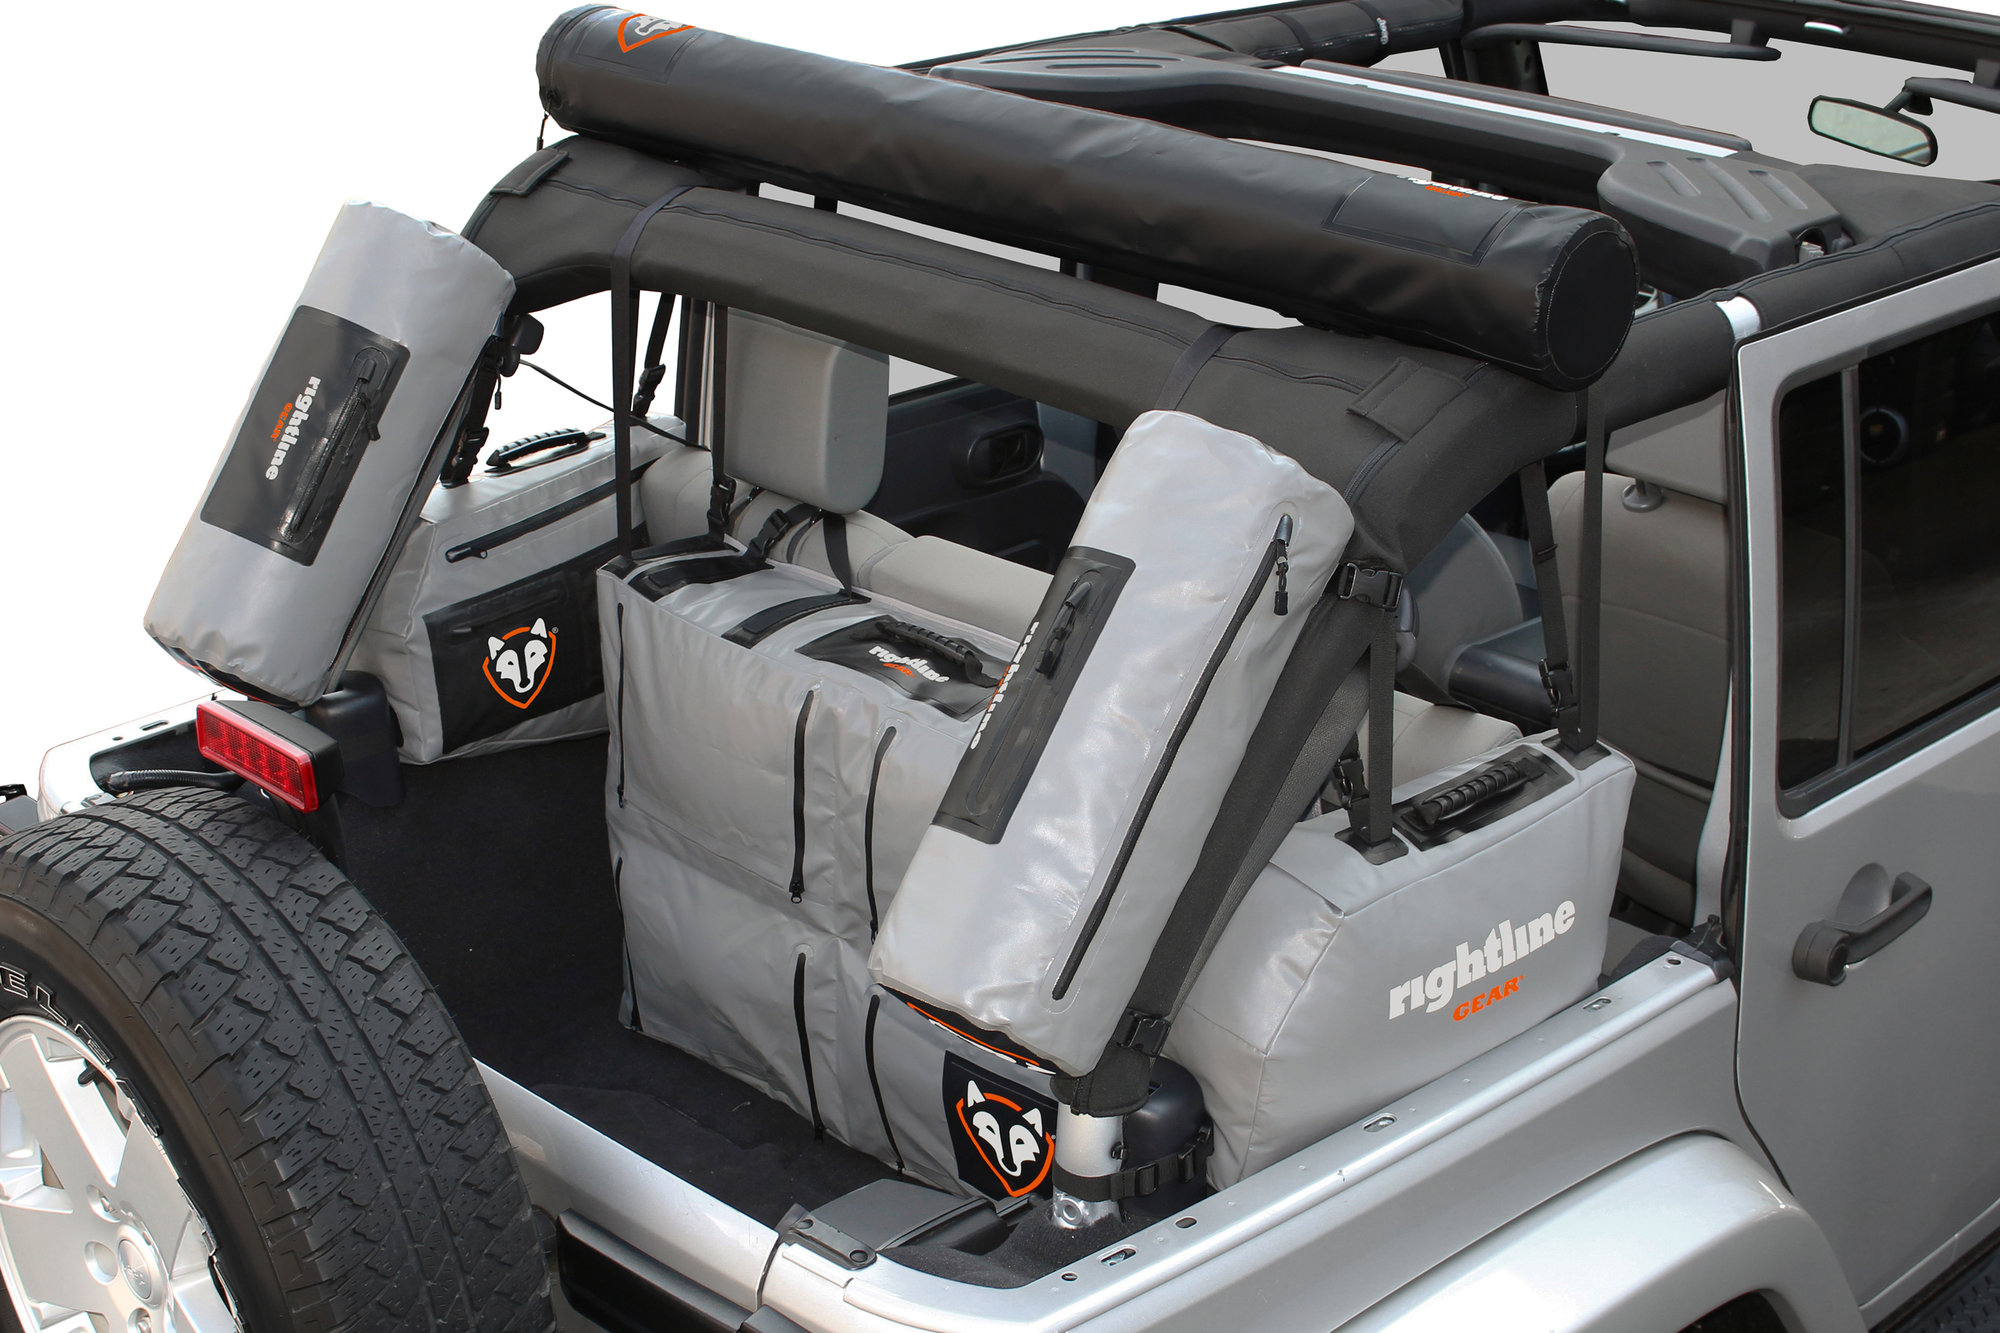 Rightline Gear 4x4 Side Storage Bags For 07 18 Jeep